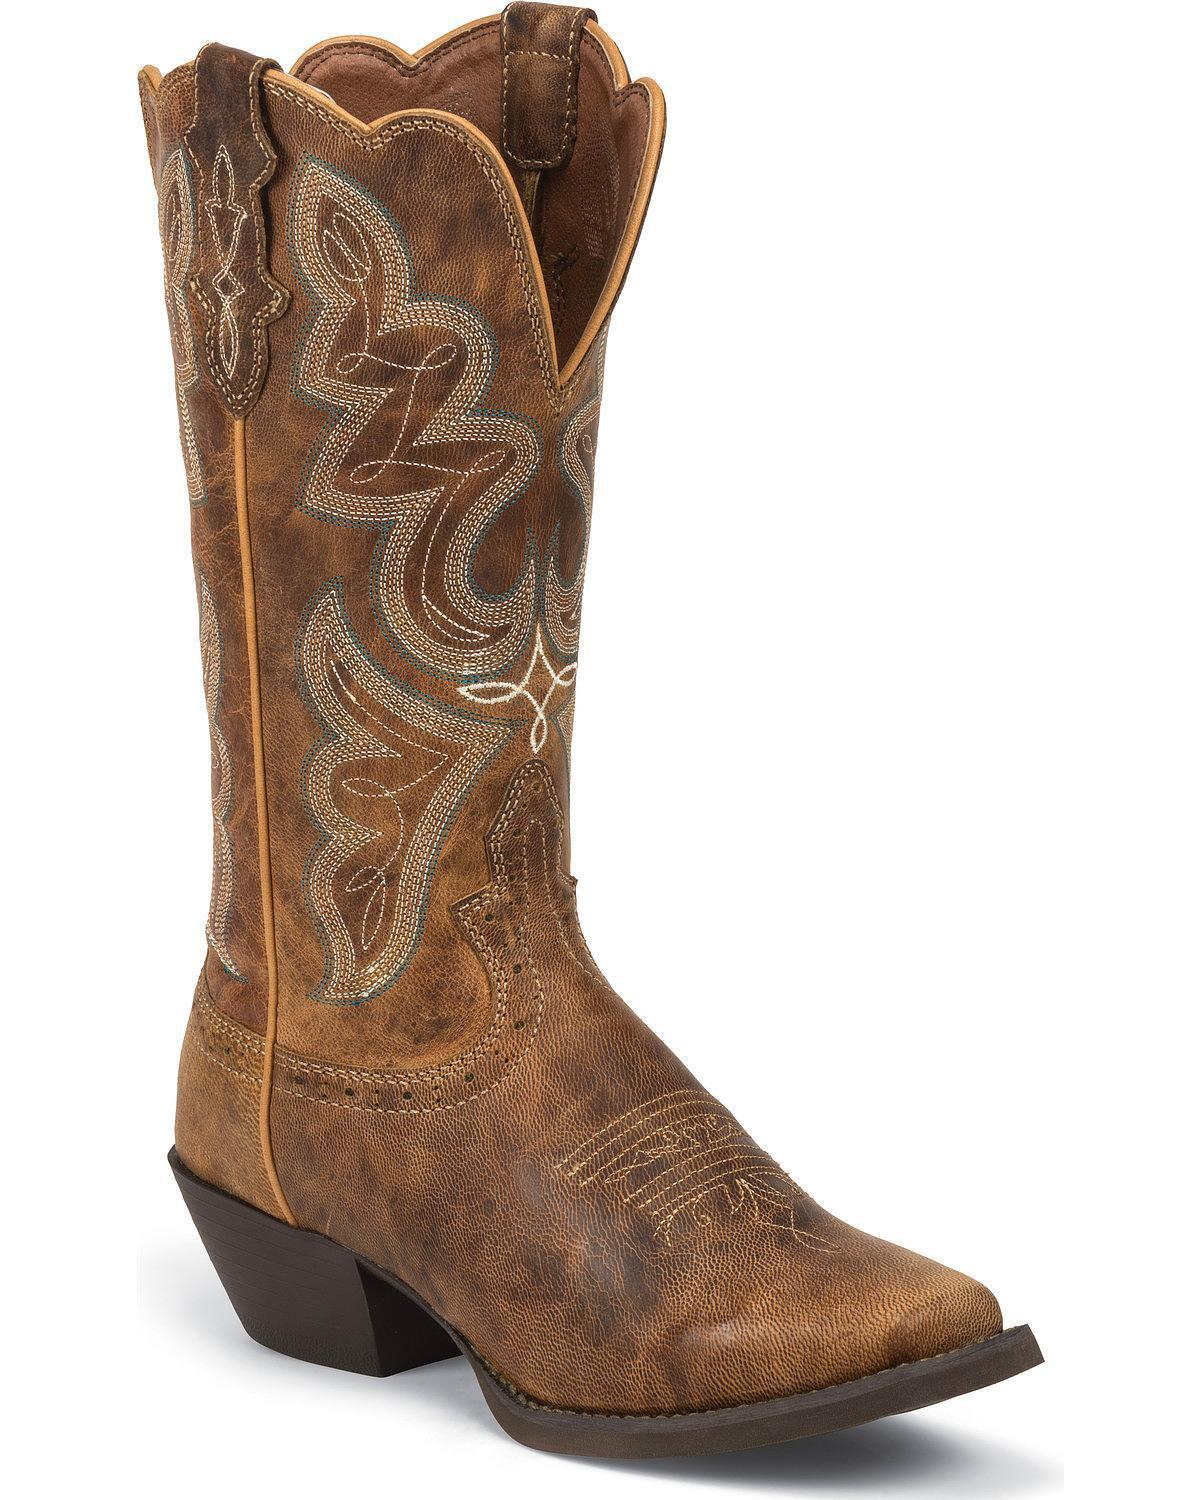 Perfect Justin Gypsy Cowgirl Square Toe - Zappos.com Free Shipping BOTH Ways